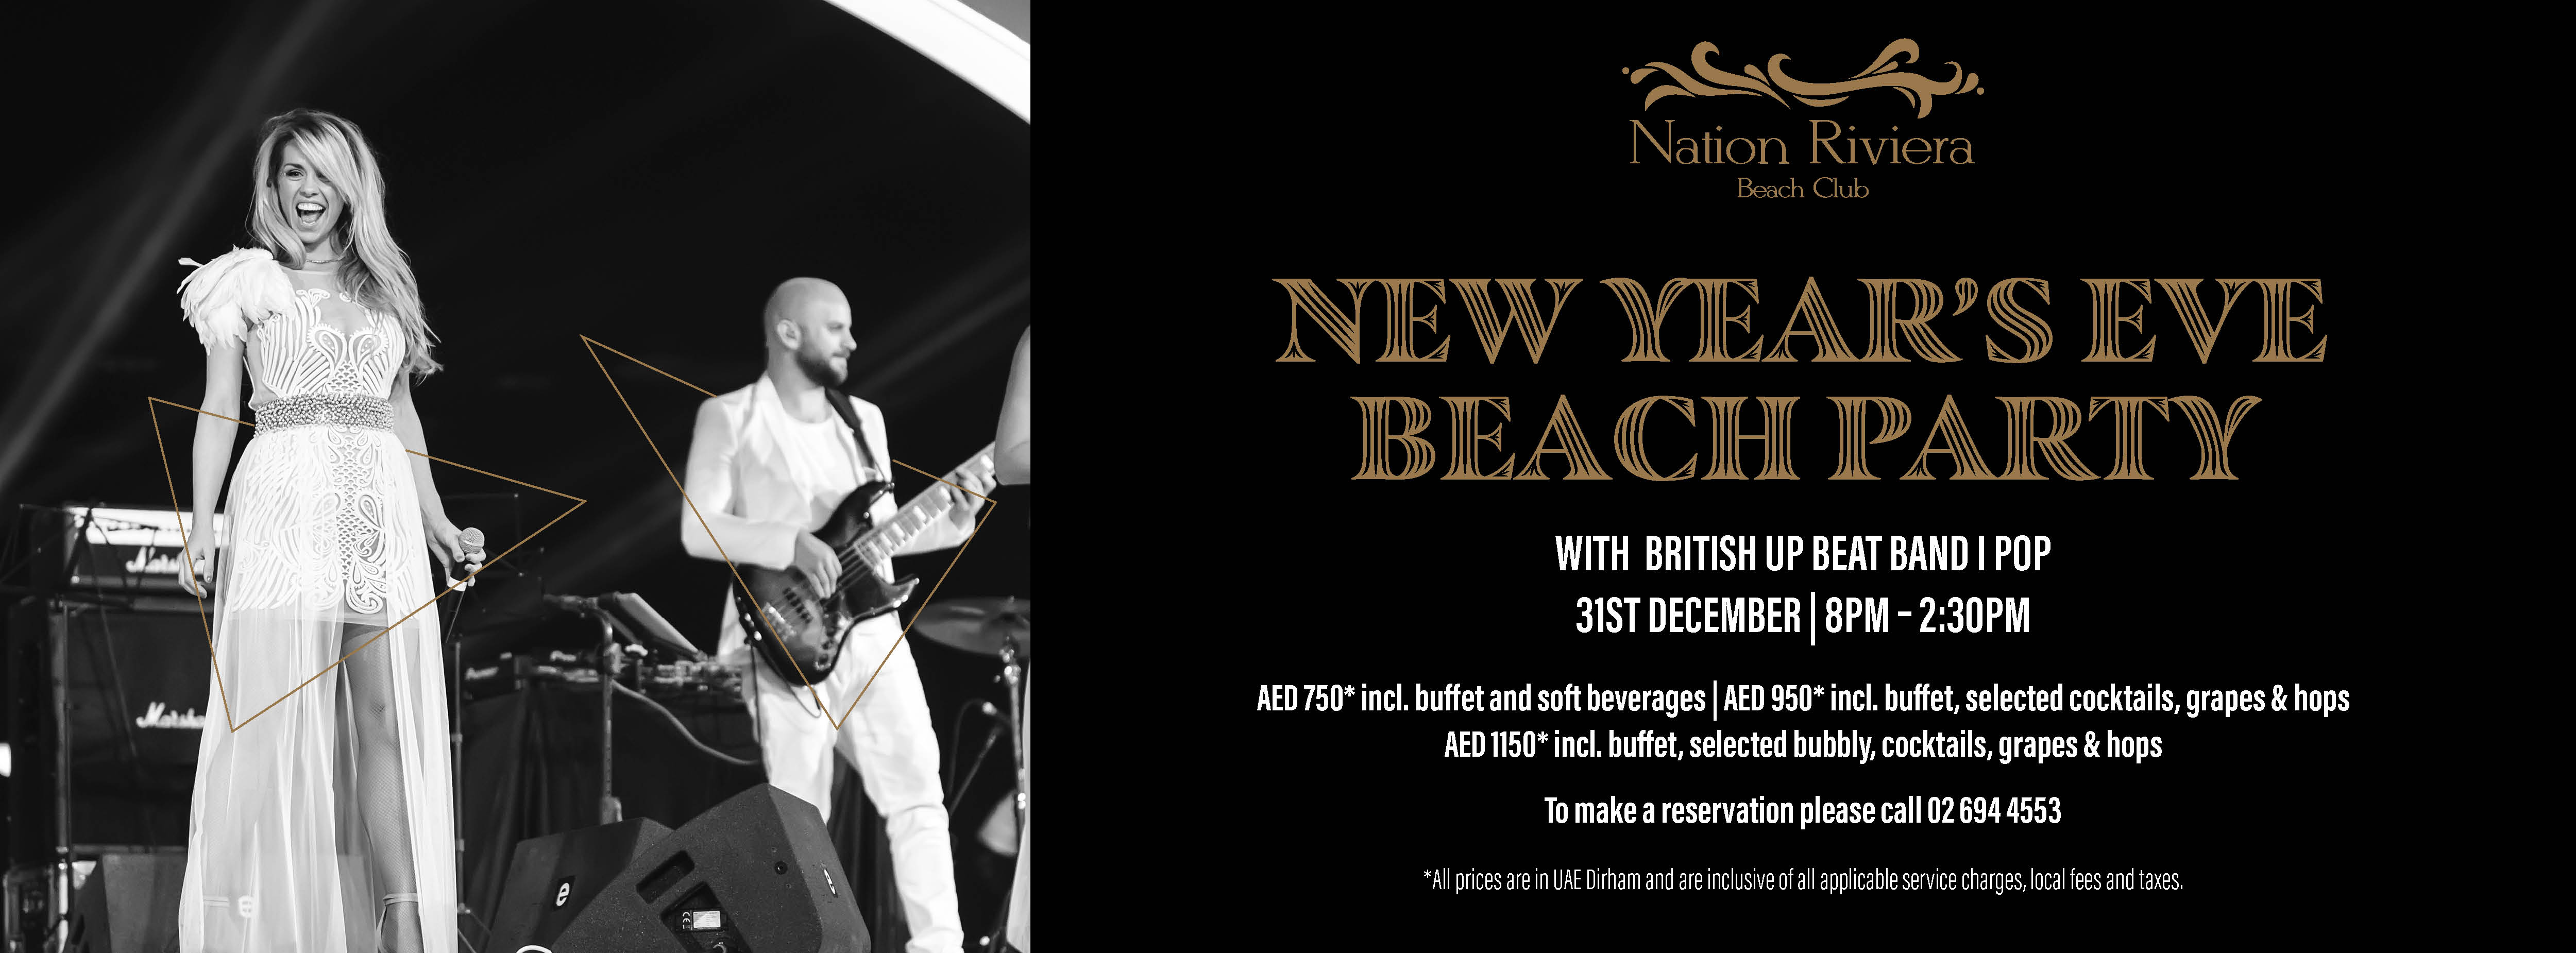 New Year's Eve Beach Party @ Nation Riviera Beach Club